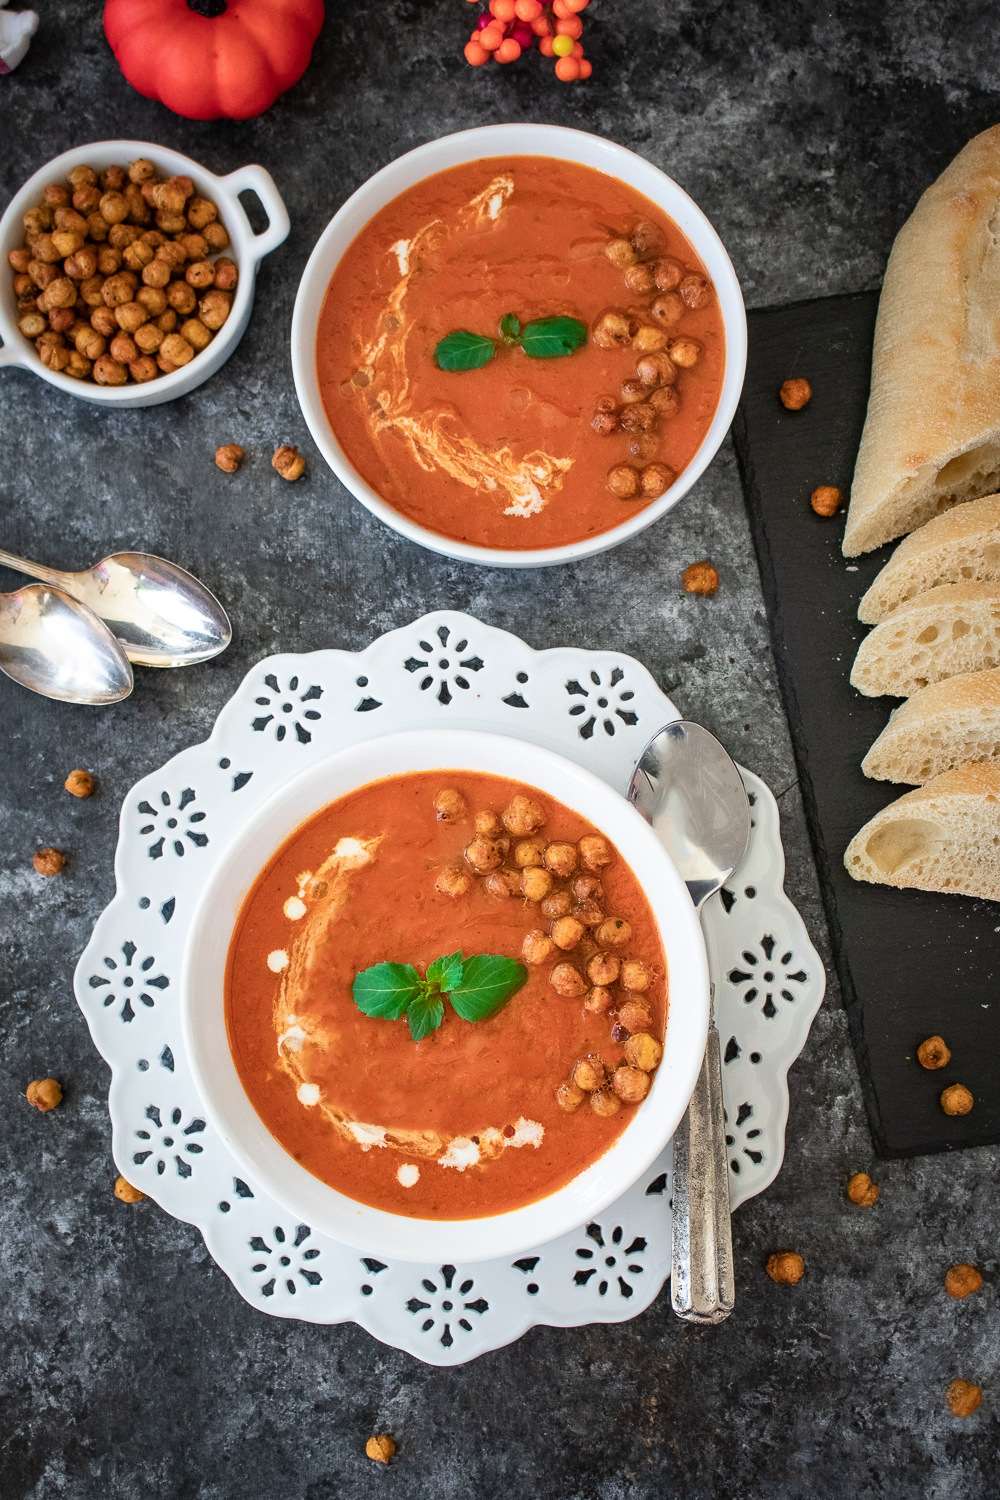 Instant Pot Roasted Red Pepper and Tomato Bisque with roasted chickpeas and basil leaves